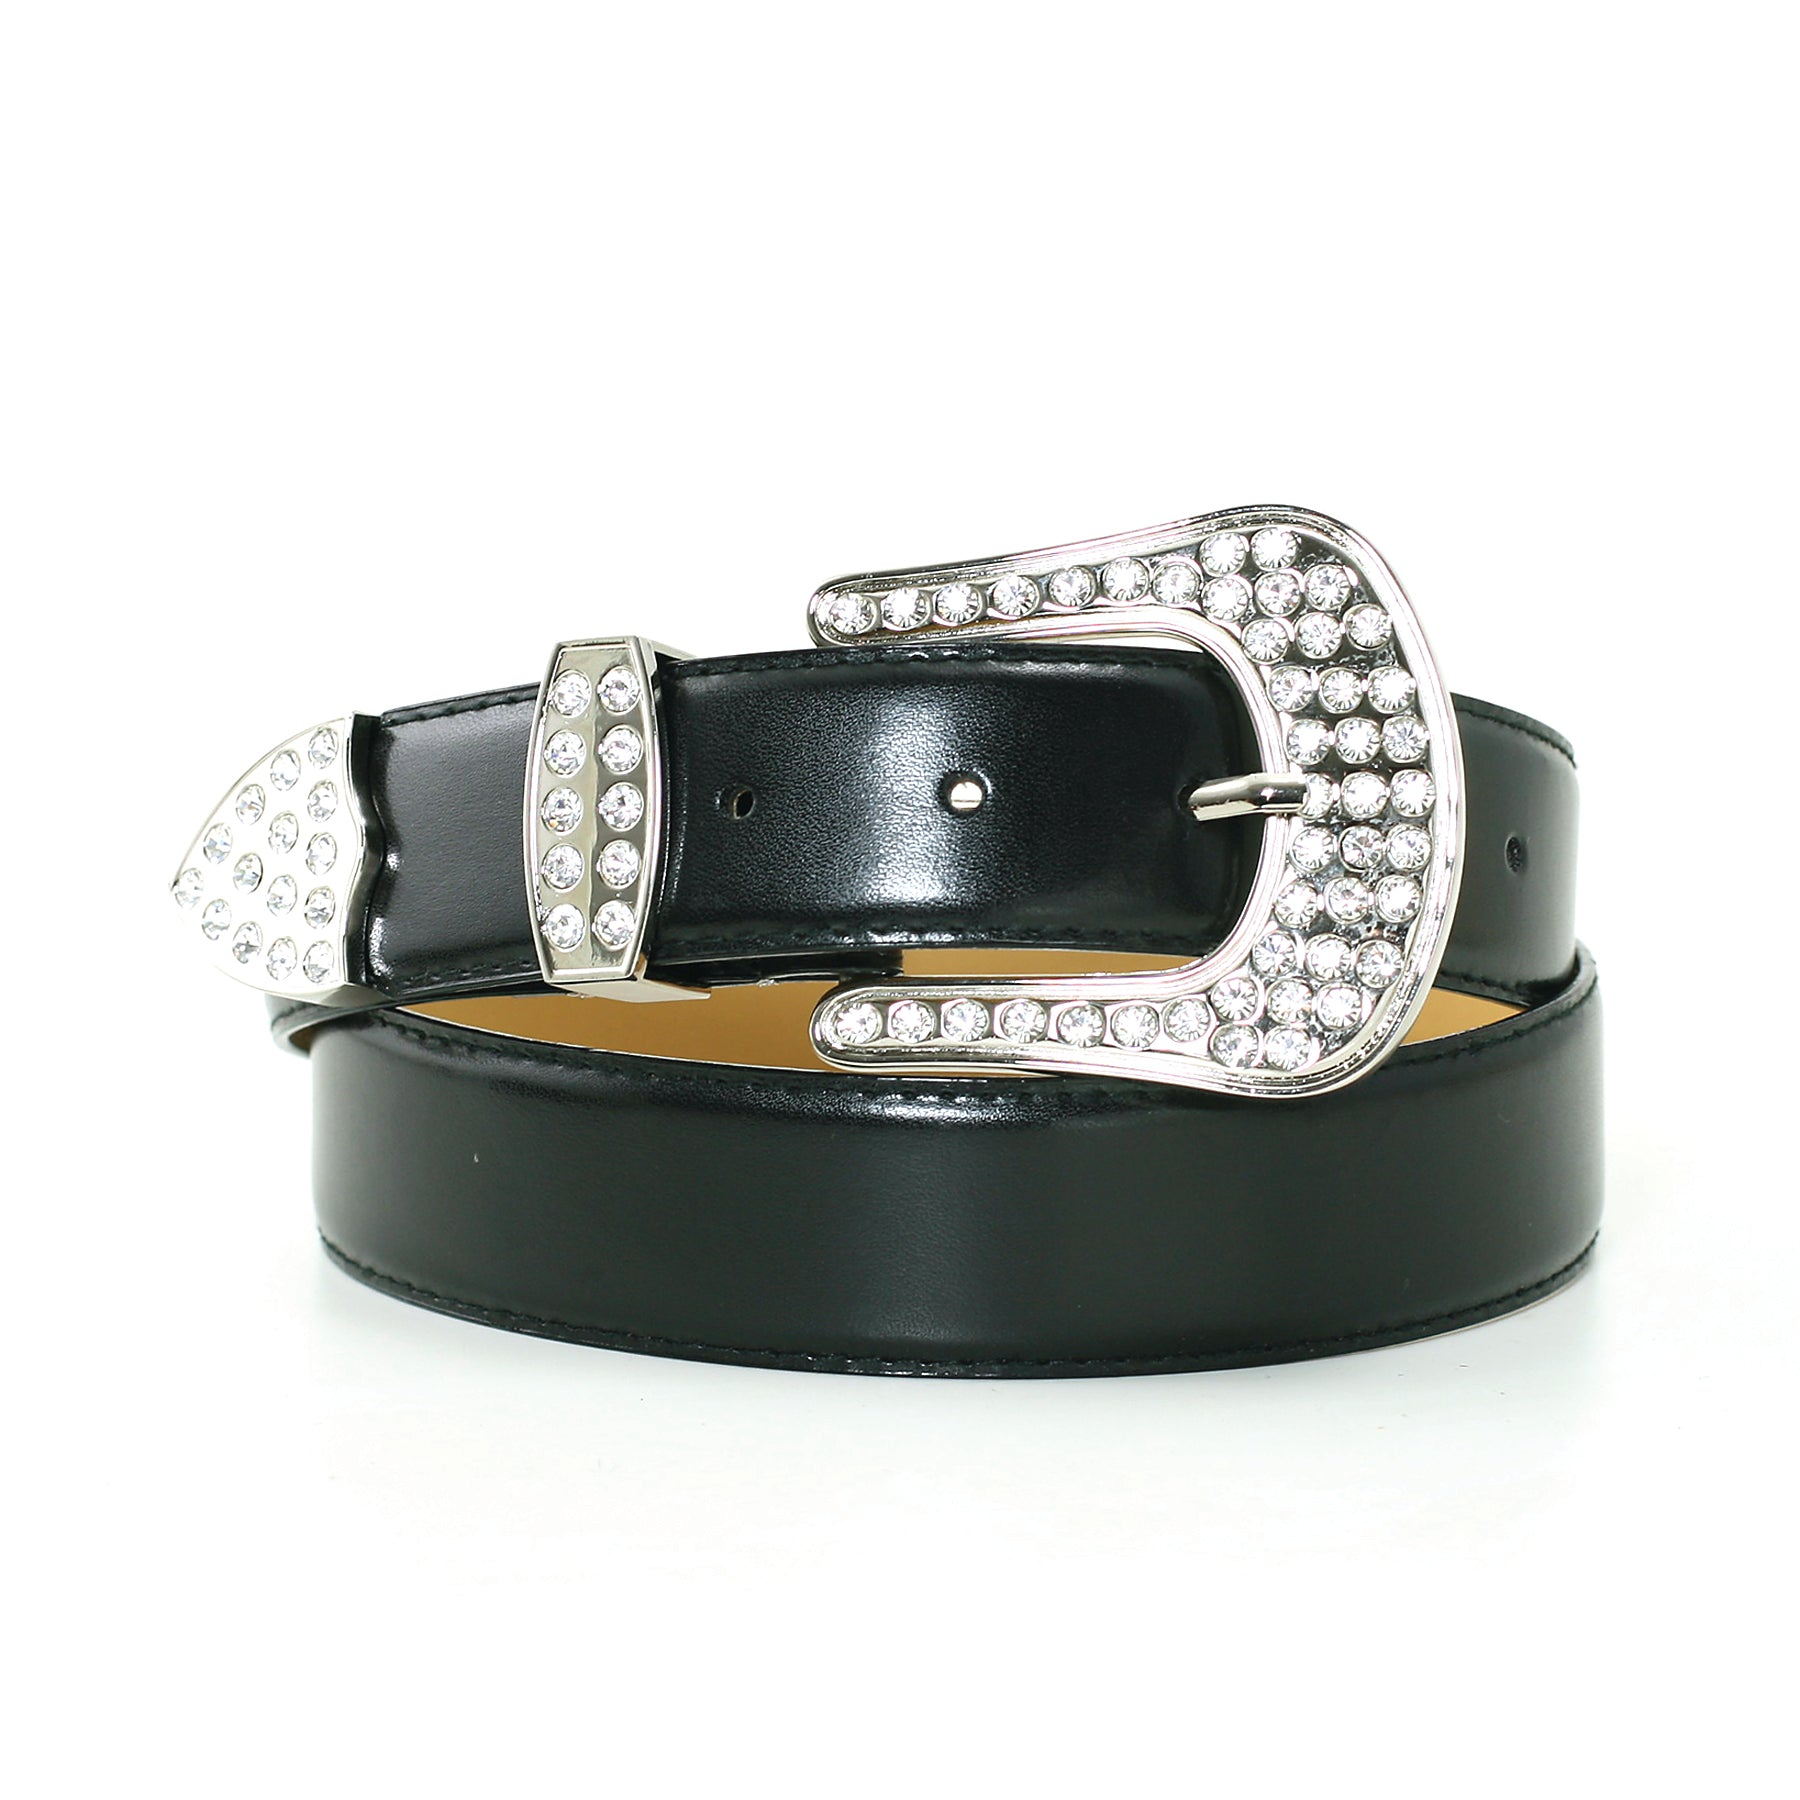 1 1/4 Inch Width Fashion Belt In Synthetic Material front view